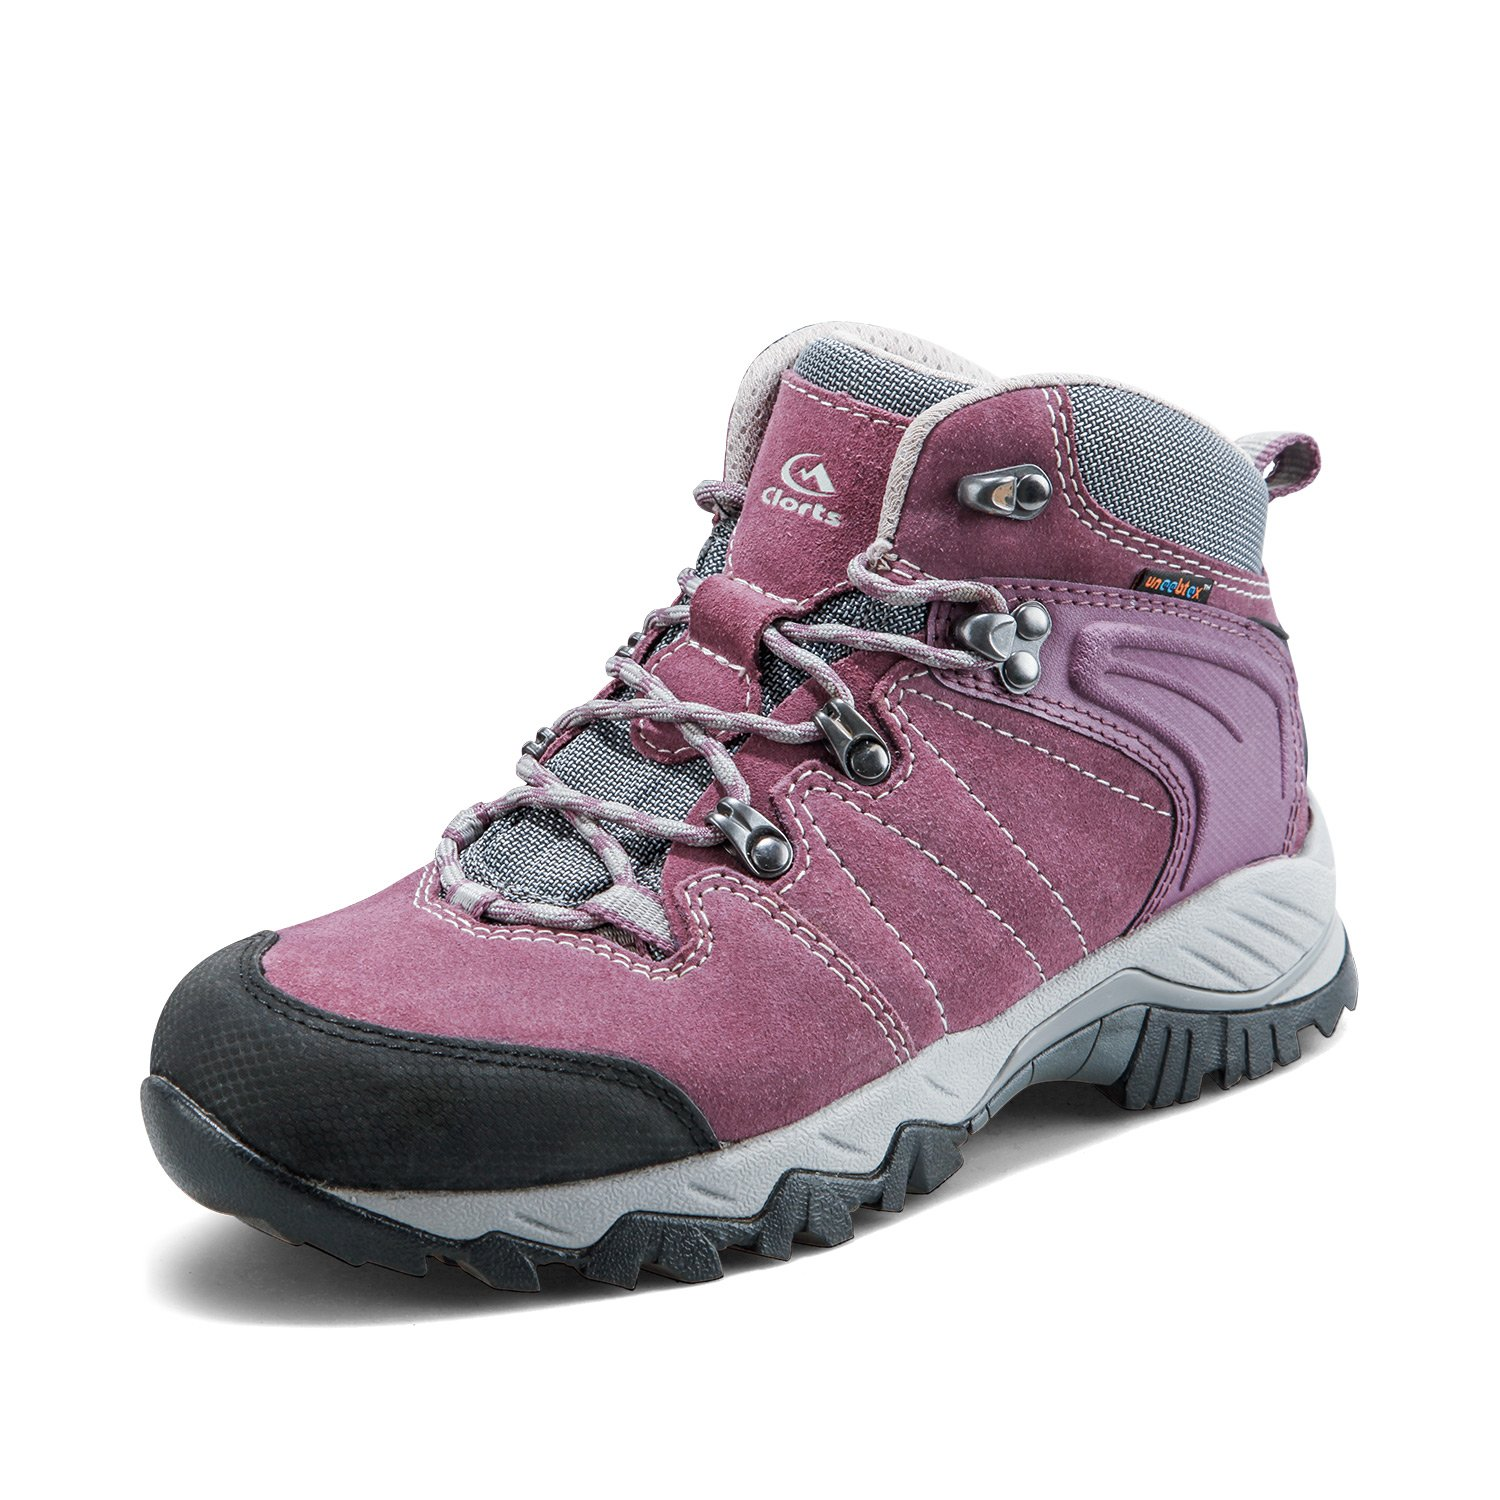 Clorts Women's Hiker Leather GTX Waterproof Hiking Boot Outdoor Backpacking Shoe Purple HKM-822E US9